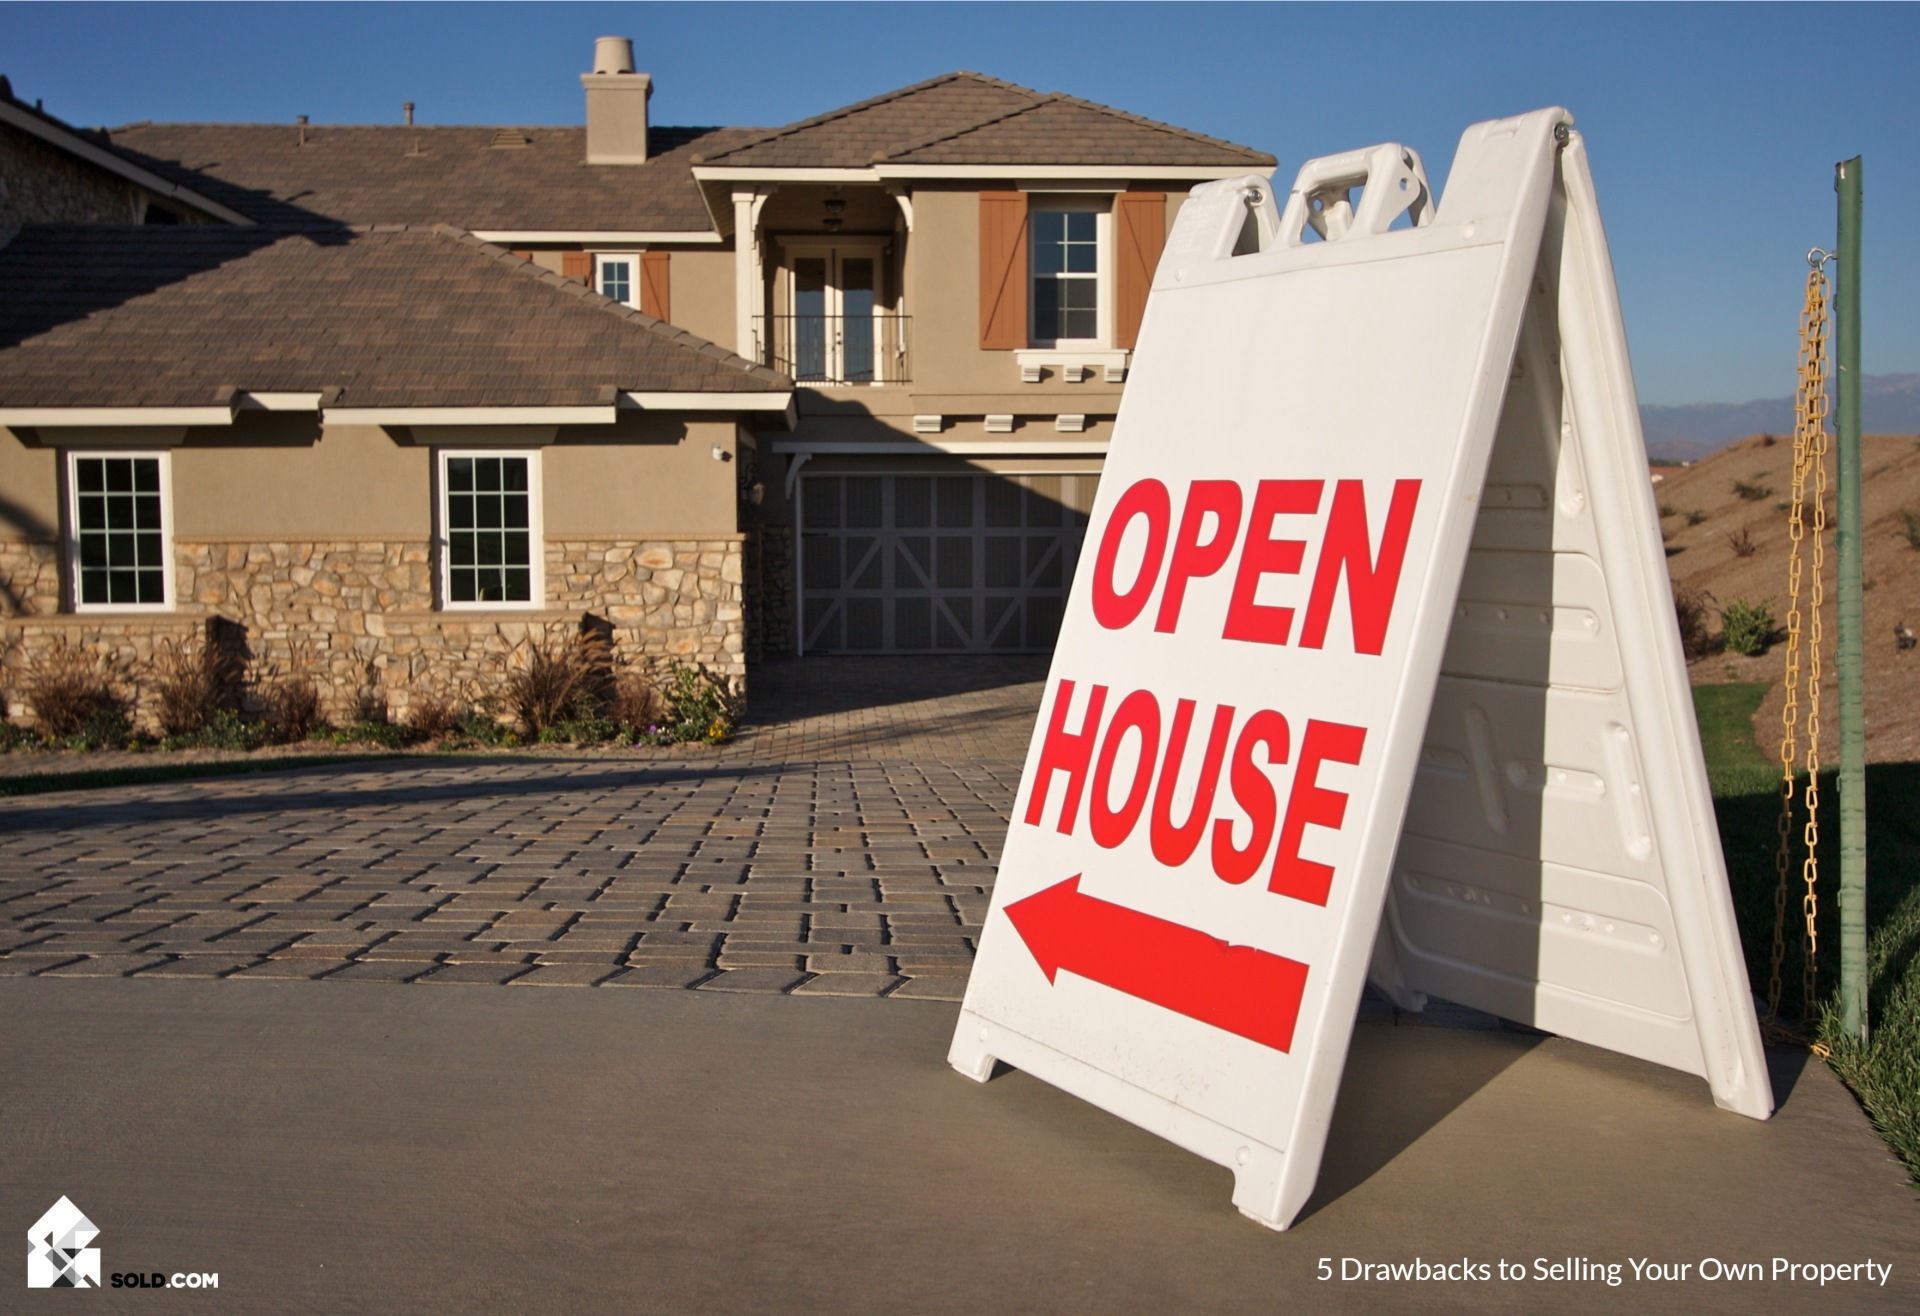 5 Downsides to Selling Your Own Property